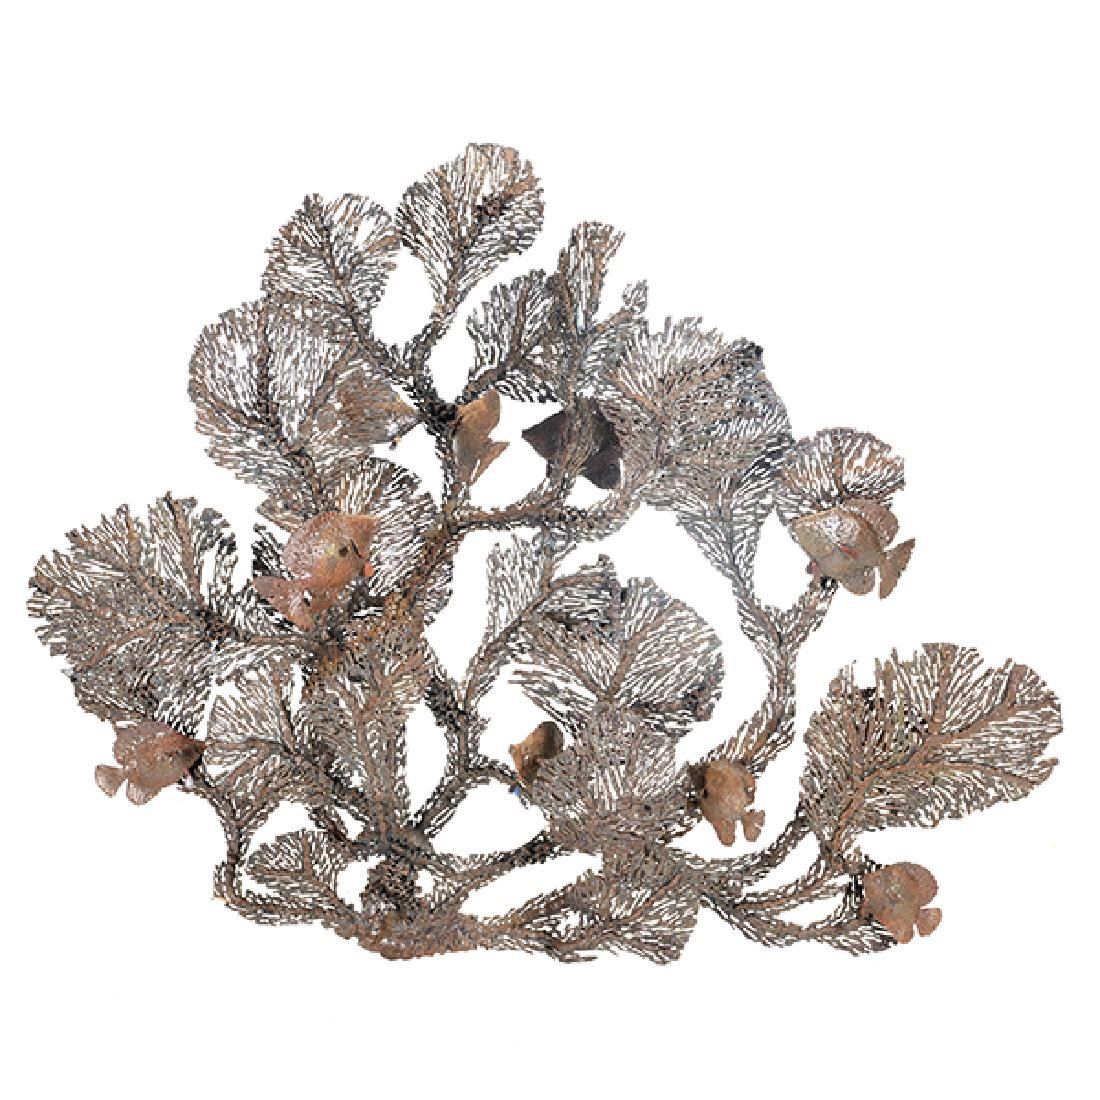 Curtis Jere Coral and Fish Metal Hanging Sculpture